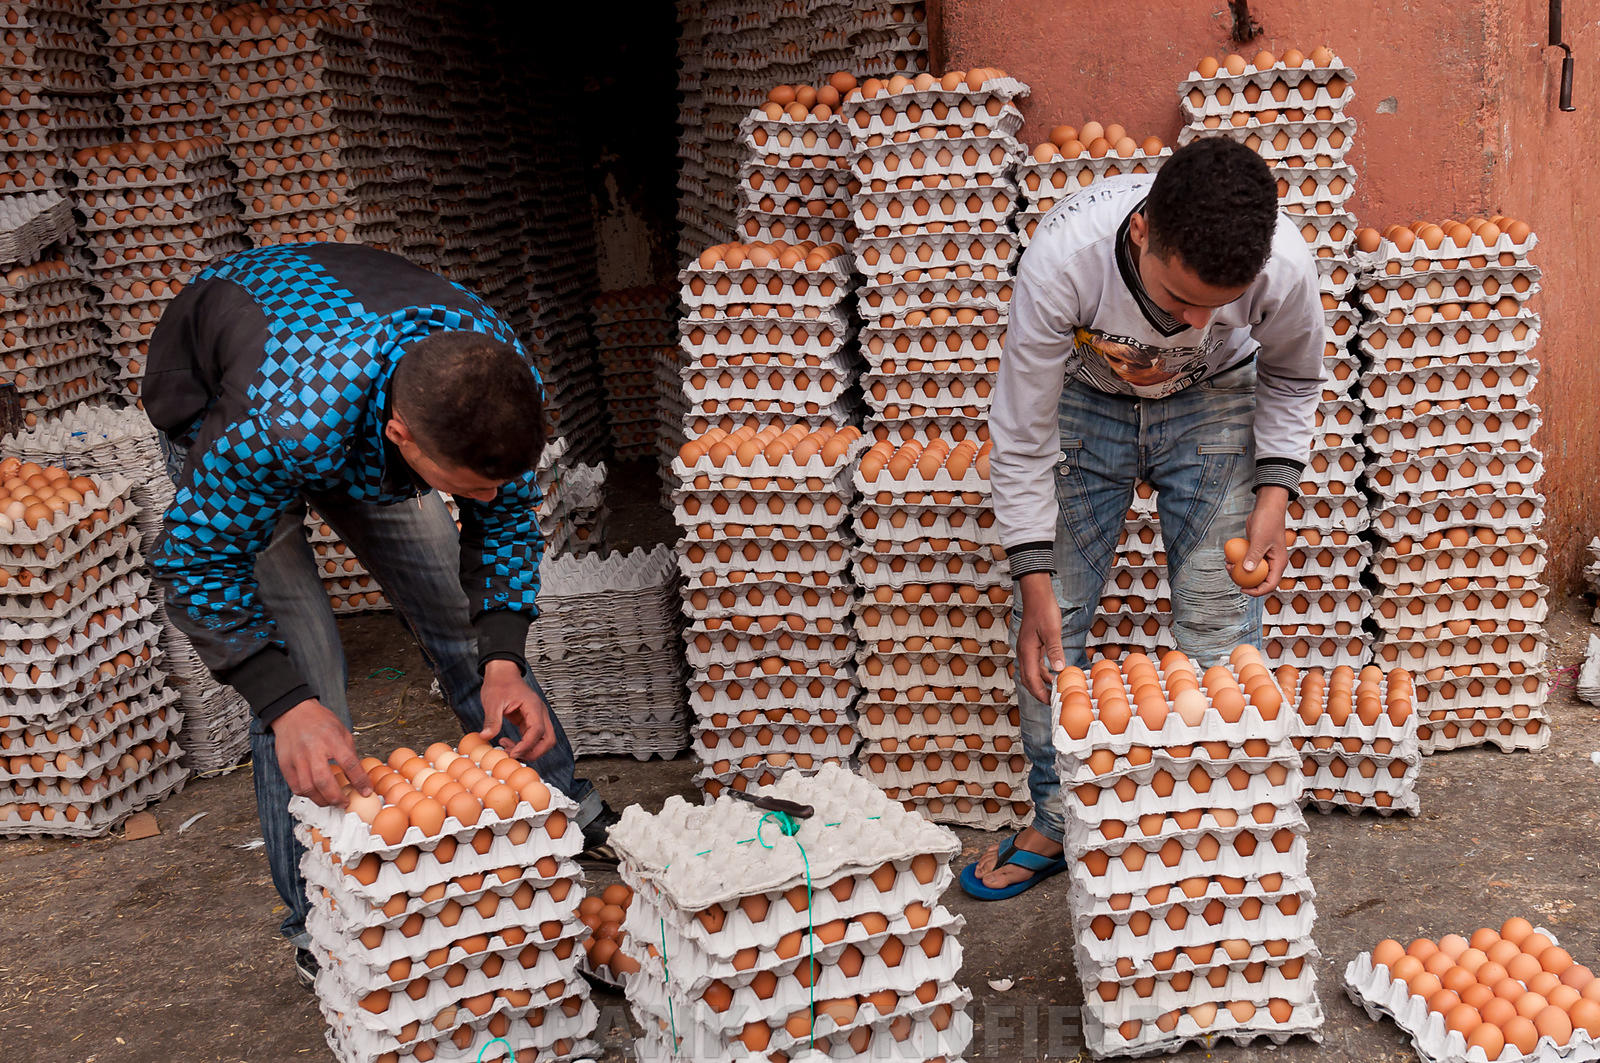 Egg sellers marrakech